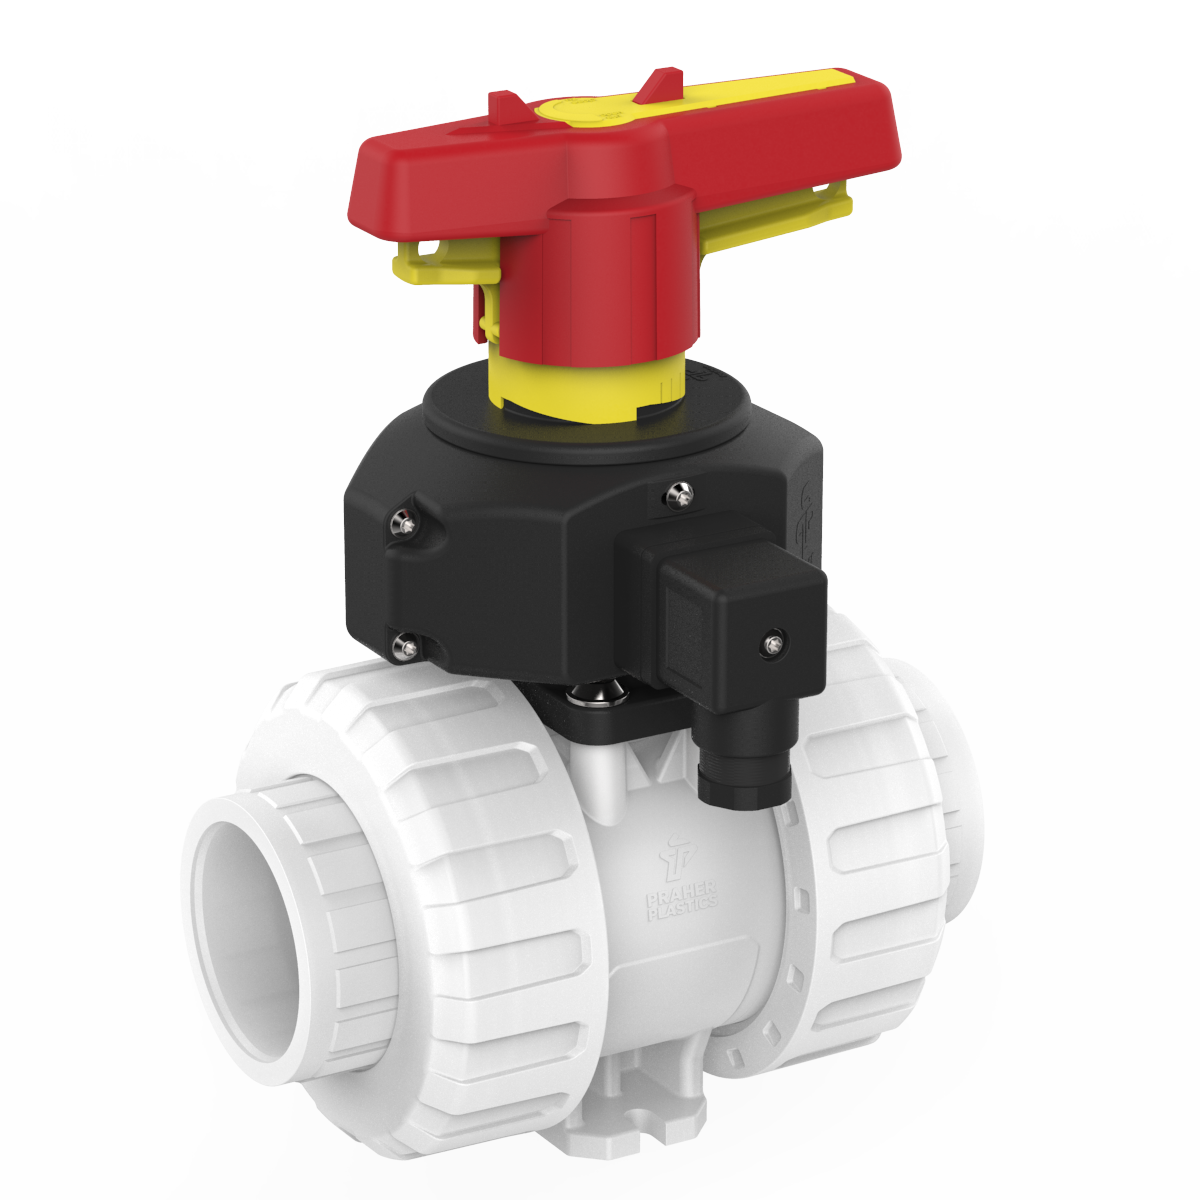 Ball Valve M1-DN40-PVDF with position feedback, white,black, yellow and red